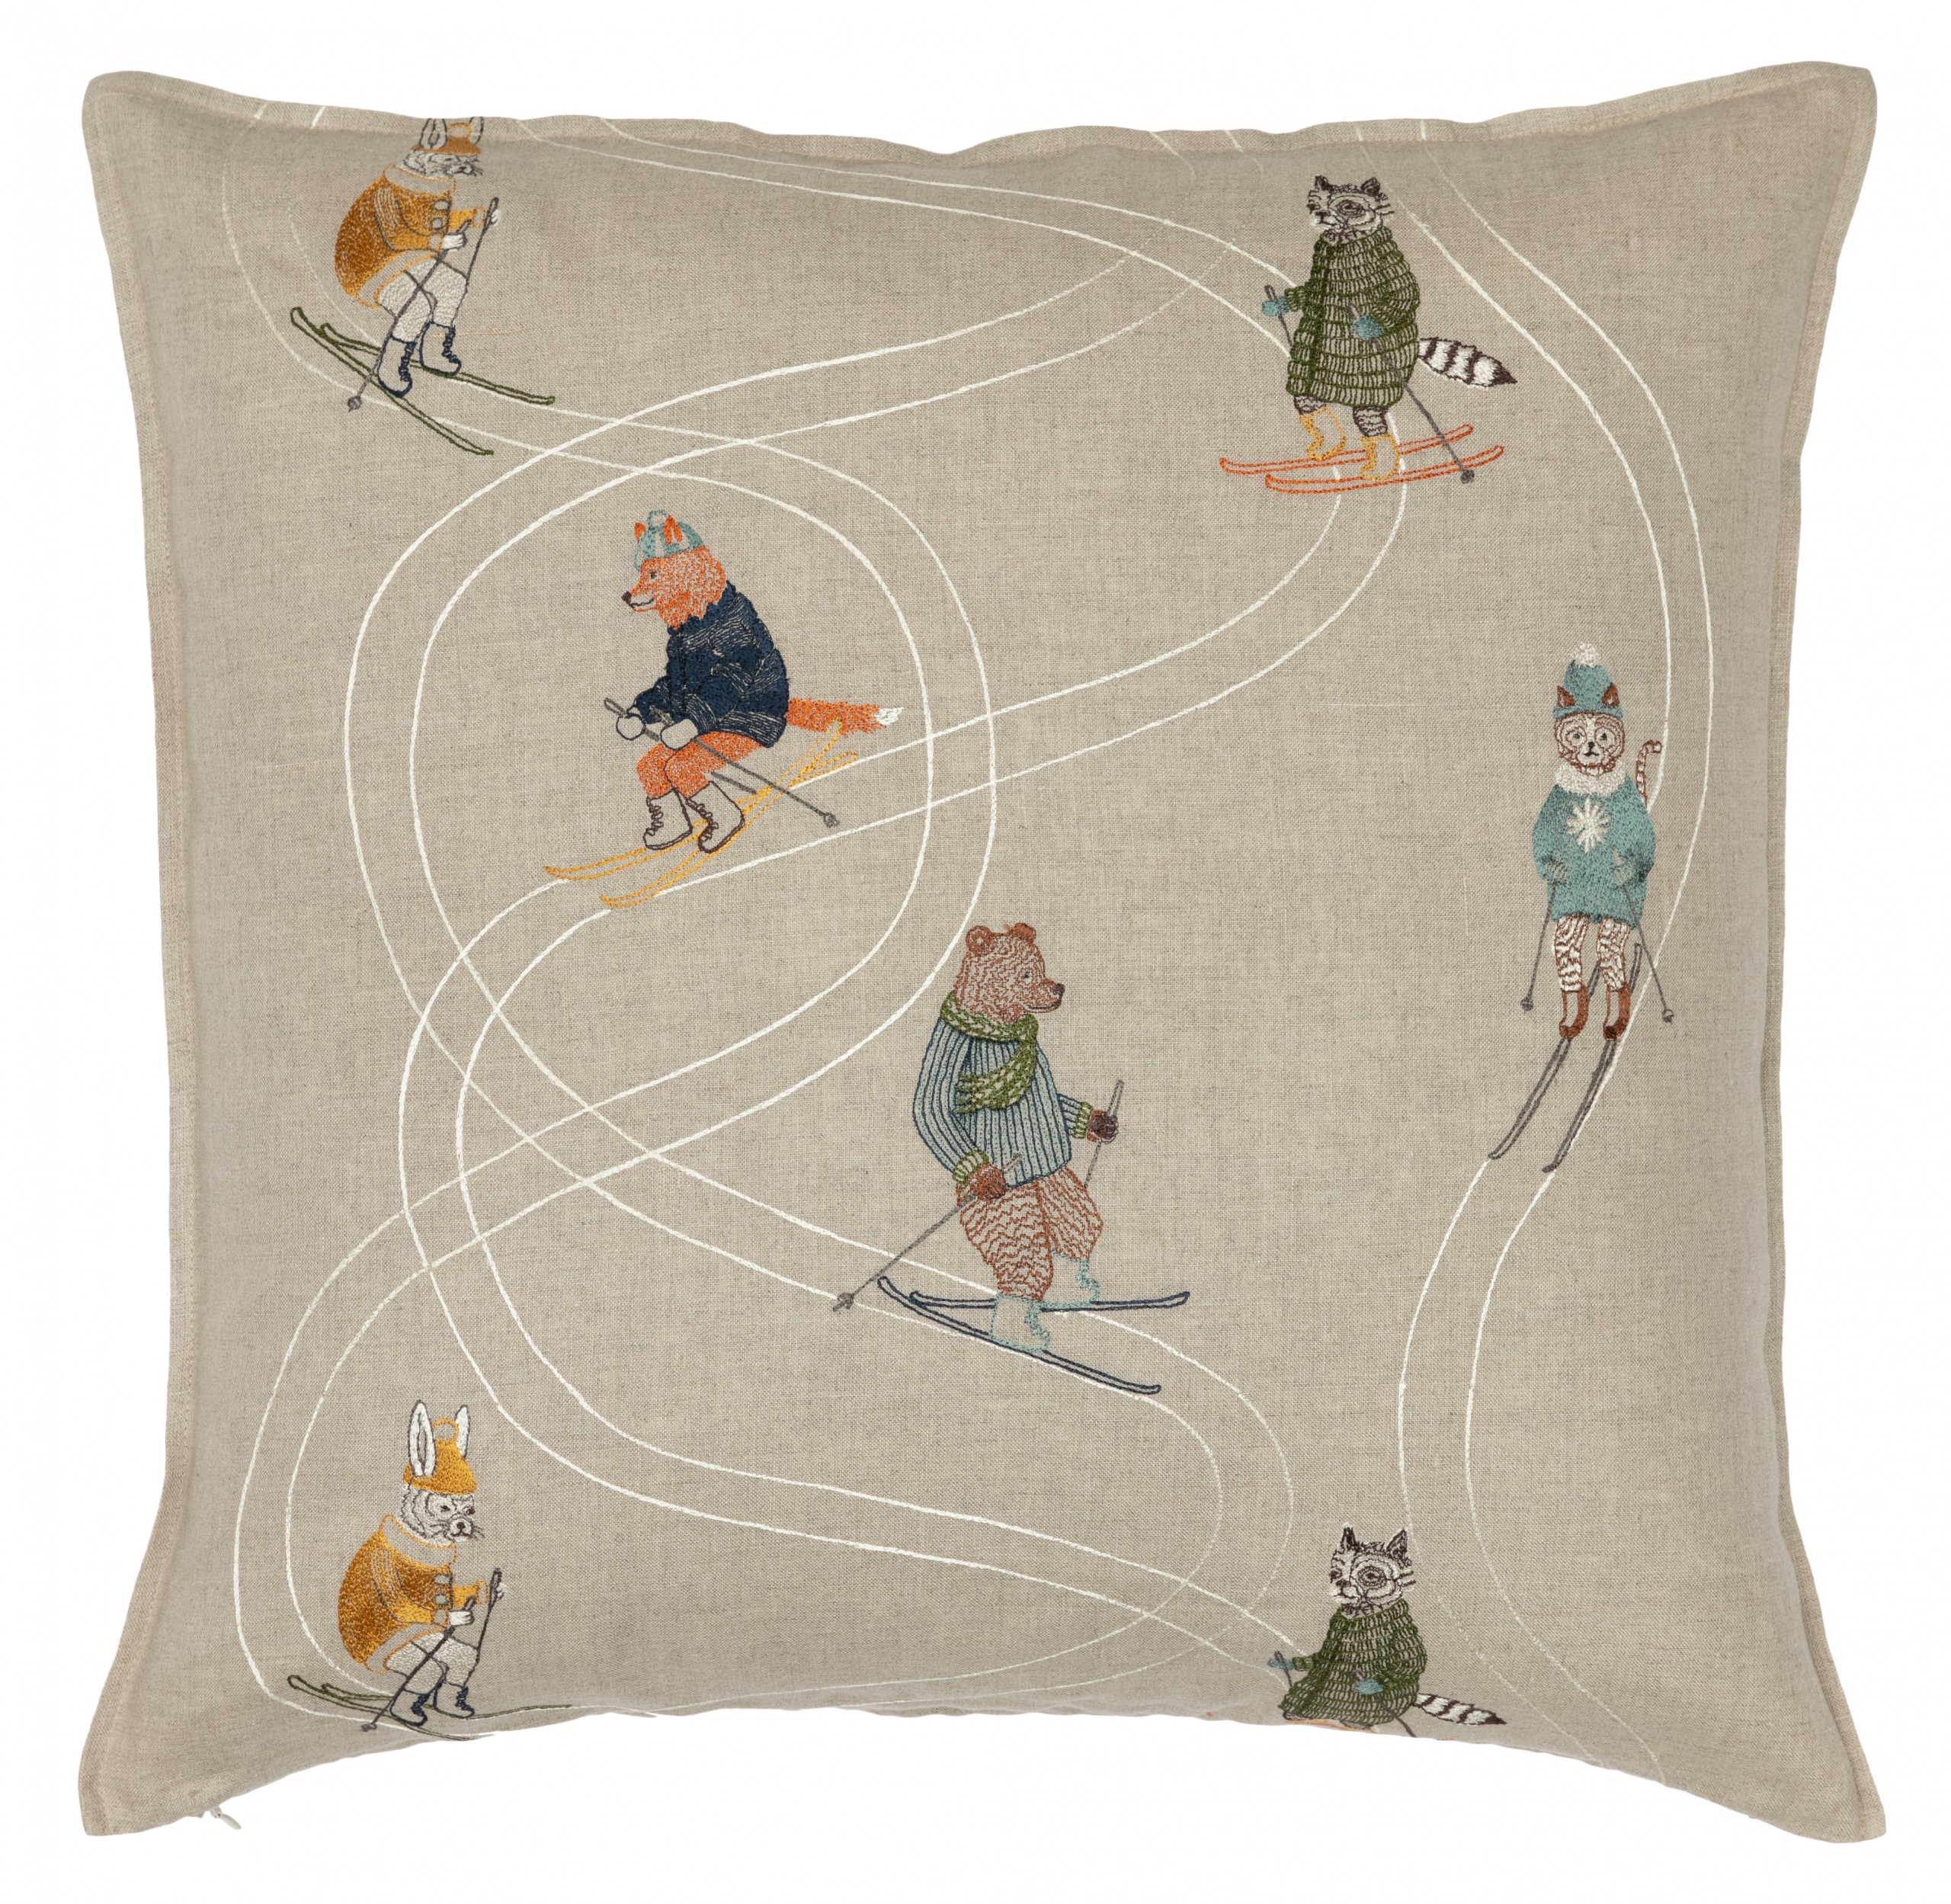 Coral And Tusk Downhill Skiers 20x20 Pillow